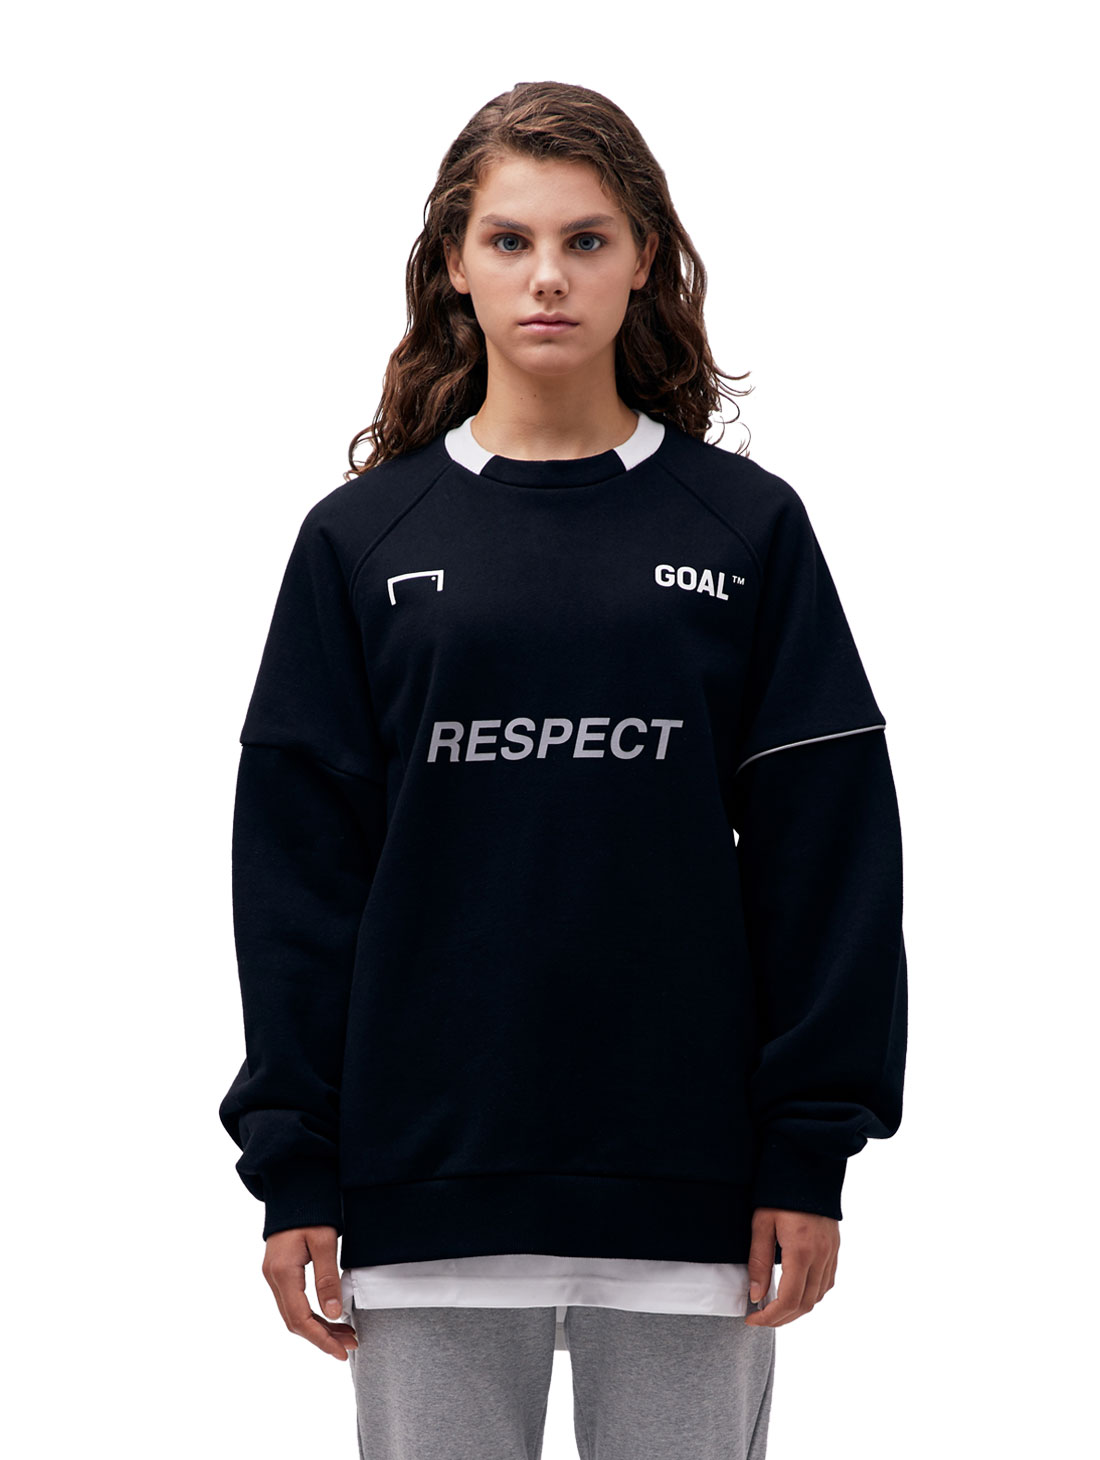 (Sold Out) RESPECT SWEATSHIRT - BLACK